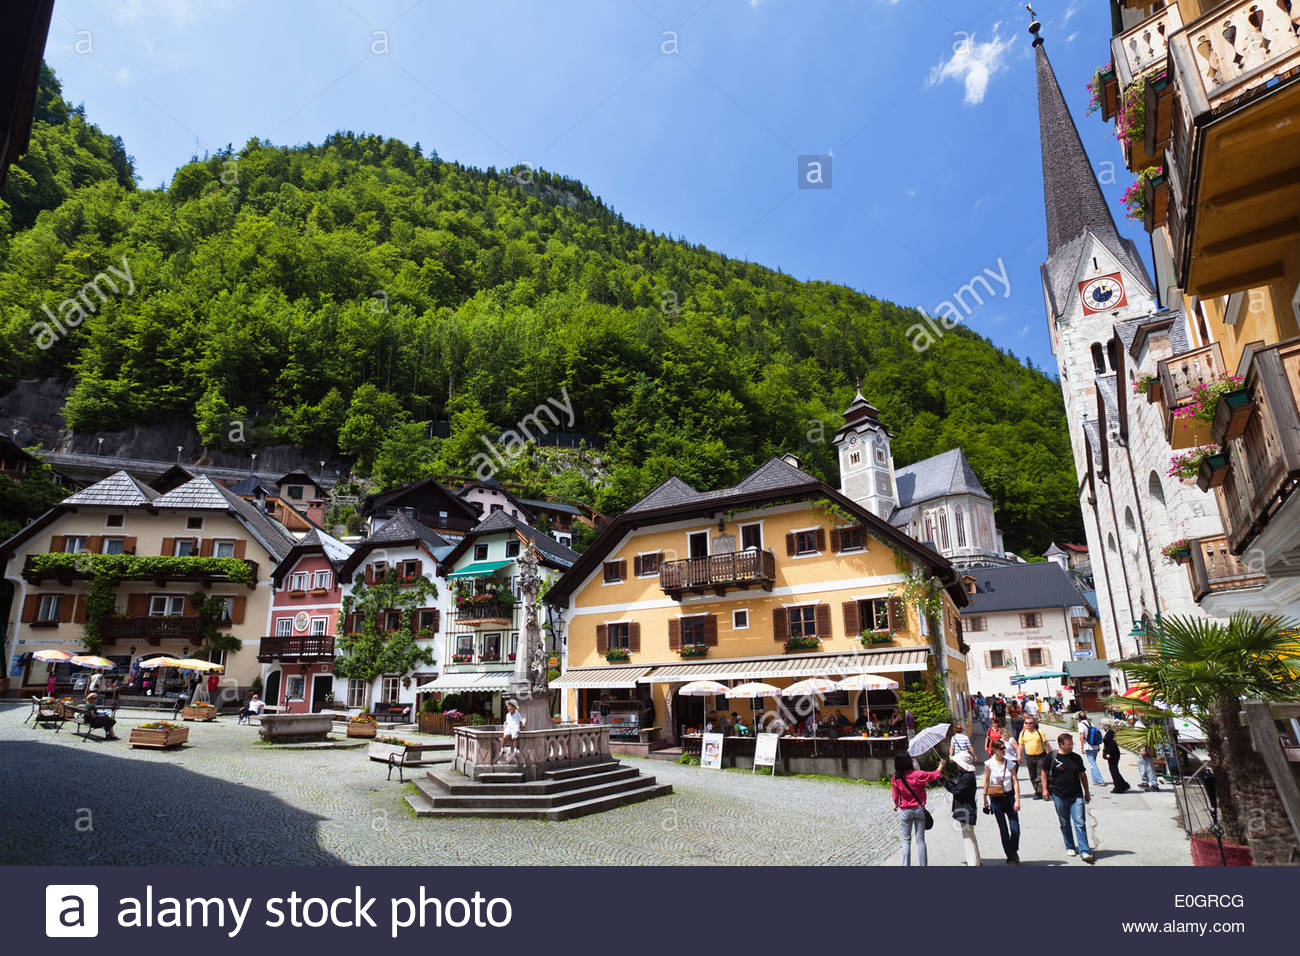 Market Place of Hallstatt with the church Christuskirche at the Hallstatt lake, Salzkammergut, Alps, Upper Austria, Austria, Eur - Stock Image